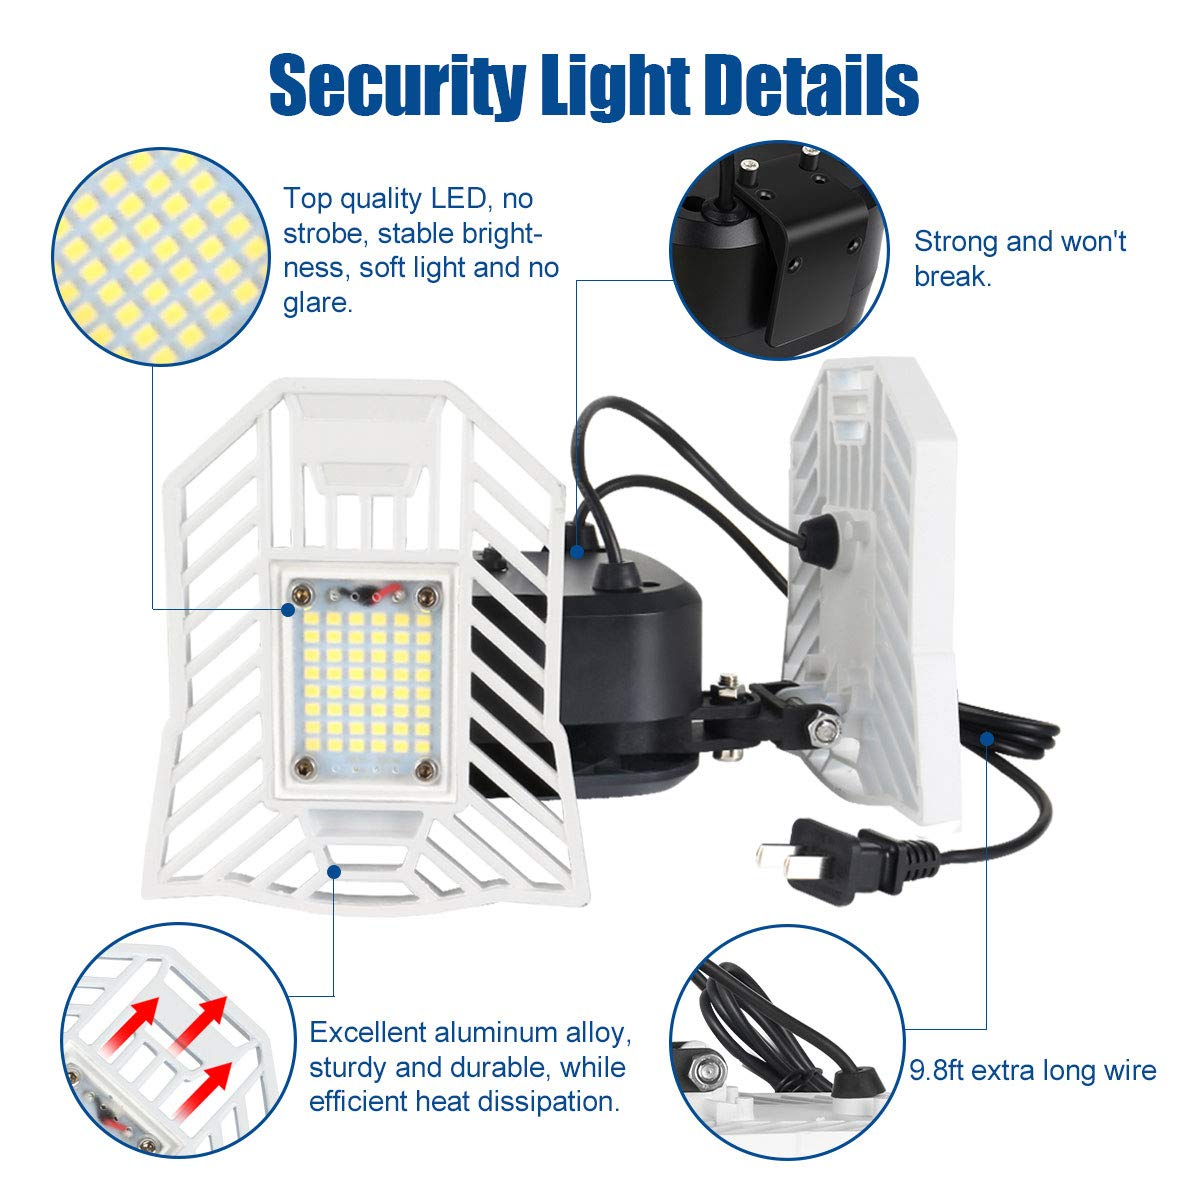 Yard Stairs 4000LM 6000K Daylight Security LED Flood Light Bulbs 40W Plug in Security Lights IP65 Waterproof Backyard Security Lights with 2 Adjustable Heads for Entryways Outdoor Security Lights